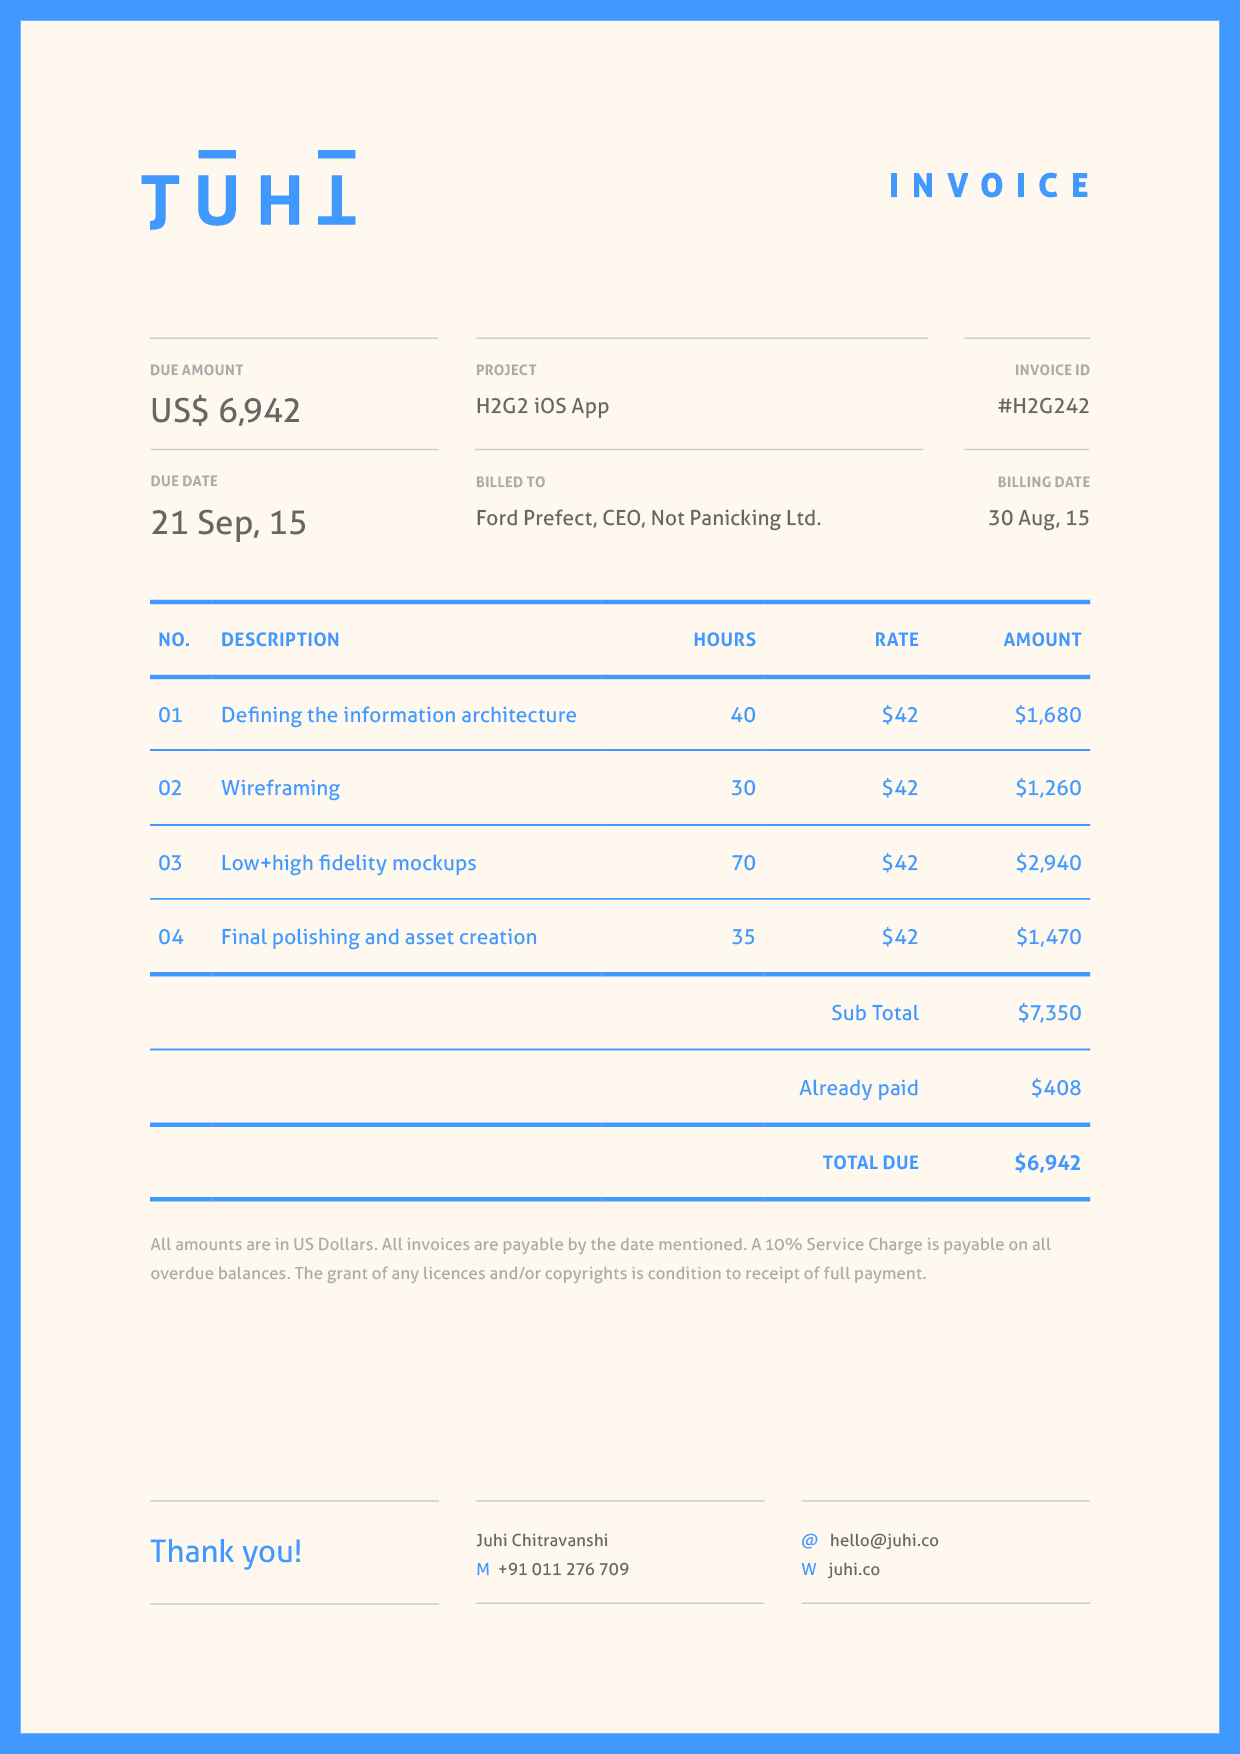 Hucareus  Outstanding Dont Hold Back On Your Invoice  Inspiring Designs  With Outstanding Invoice By Juhi Chitravanshi Follow With Amusing Invoice On Cars Also Fill In Invoice In Addition Invoice Template Printable And Free Downloadable Invoices As Well As Harvest Invoice Template Additionally Scan Invoices Into Quickbooks From Inspirationfeedcom With Hucareus  Outstanding Dont Hold Back On Your Invoice  Inspiring Designs  With Amusing Invoice By Juhi Chitravanshi Follow And Outstanding Invoice On Cars Also Fill In Invoice In Addition Invoice Template Printable From Inspirationfeedcom